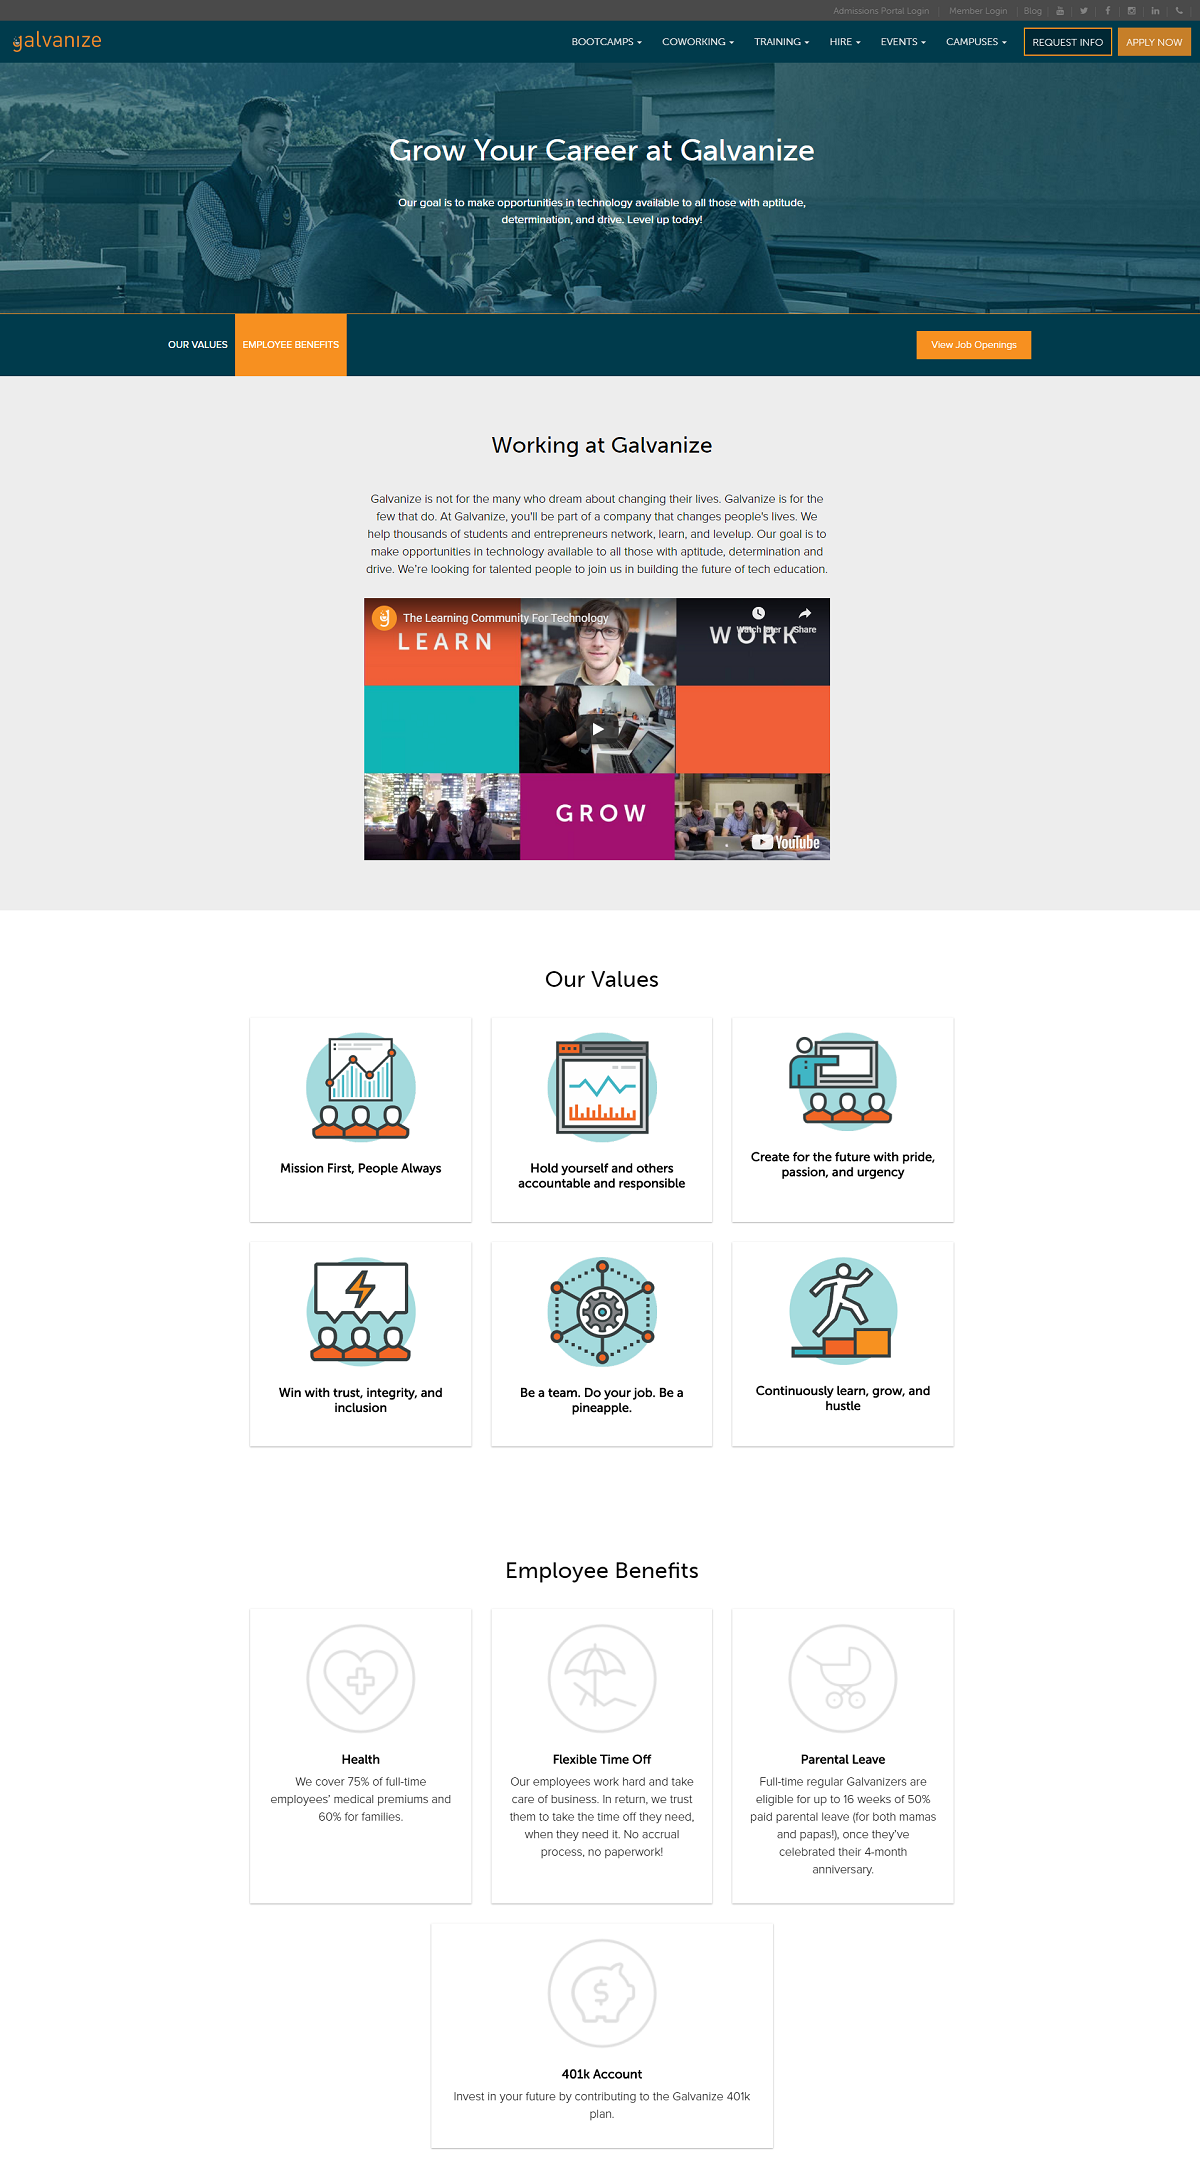 Galvanize company career page